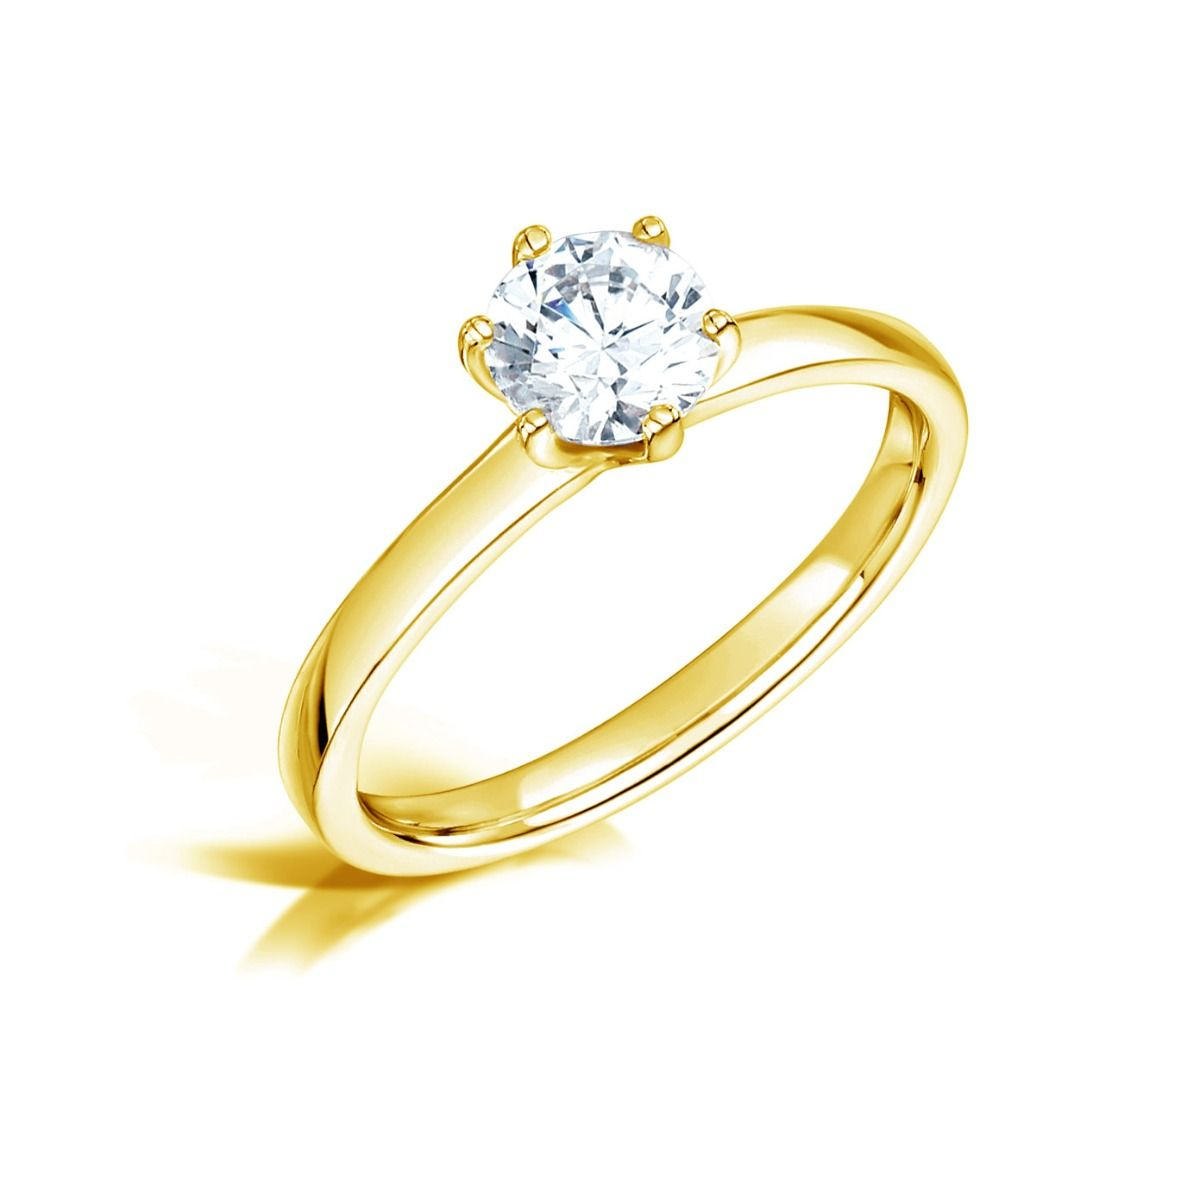 Clara – Buy Engagement Rings & Diamonds Online – Vanbruun Intended For Most Recent Sparkling Twisted Lines Rings (View 3 of 25)